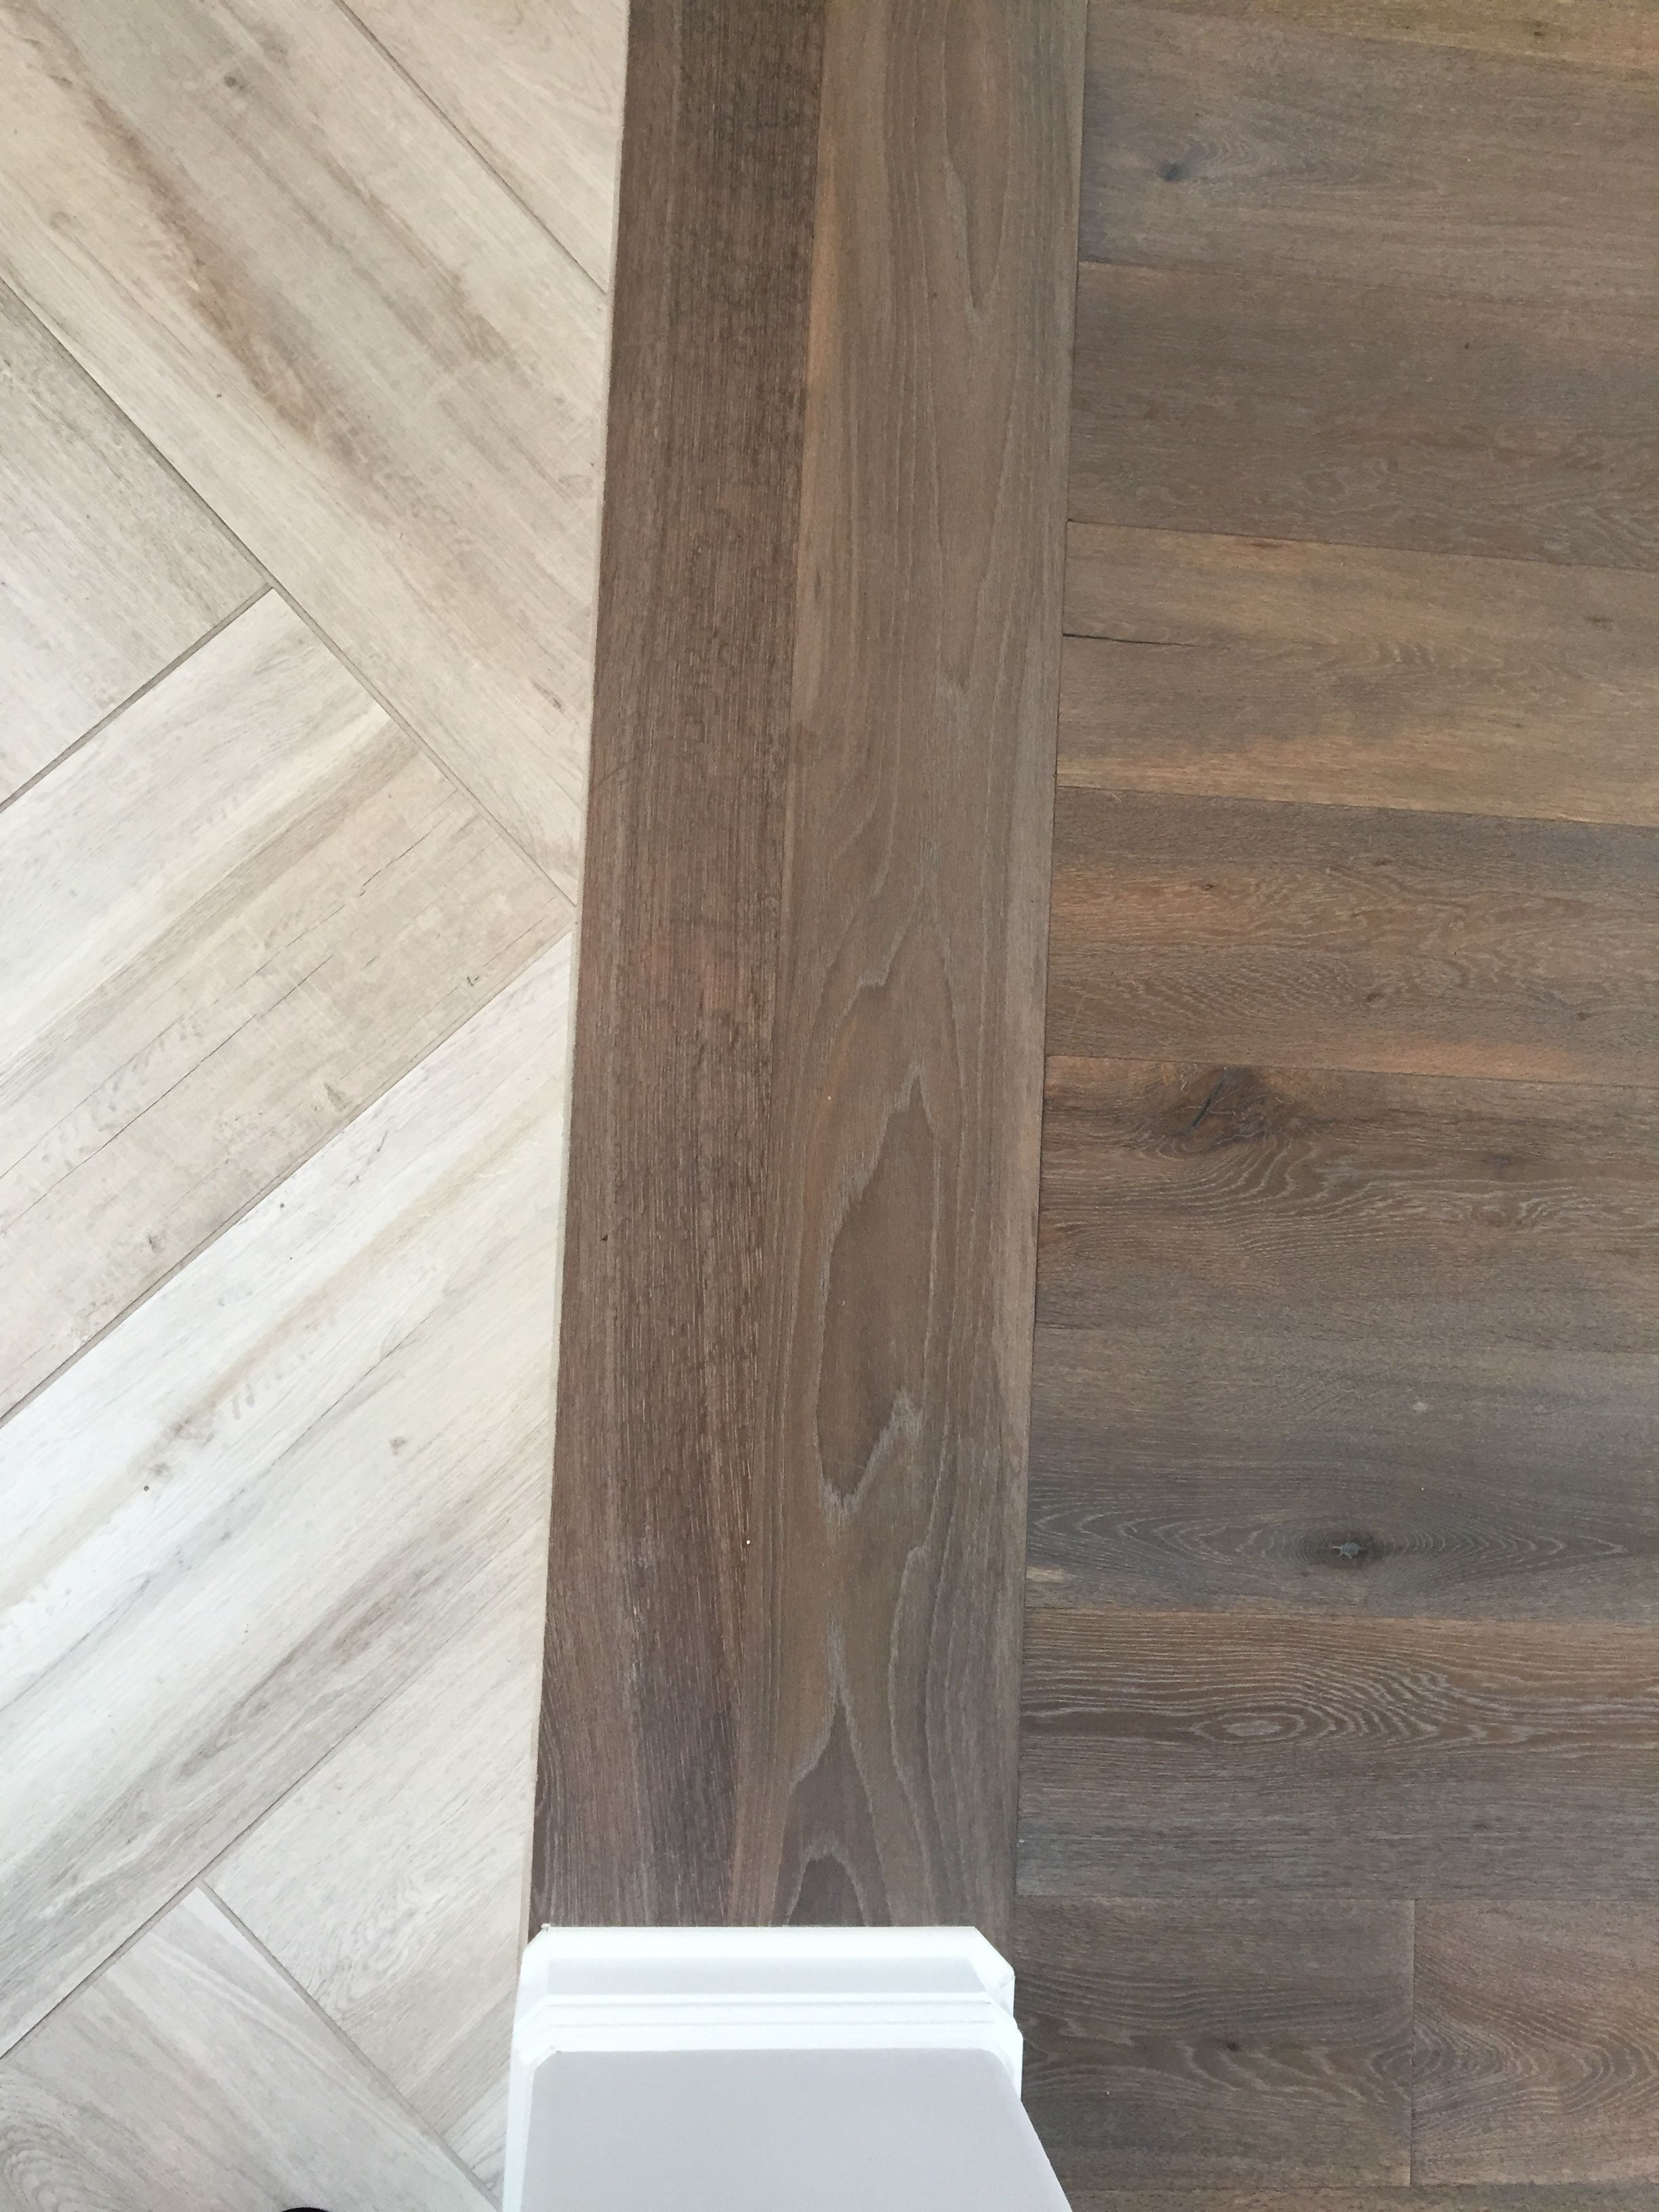 Tools Needed to Install Floating Hardwood Floor Of Floor Transition Laminate to Herringbone Tile Pattern Model Pertaining to Floor Transition Laminate to Herringbone Tile Pattern Herringbone Tile Pattern Herringbone Wood Floor